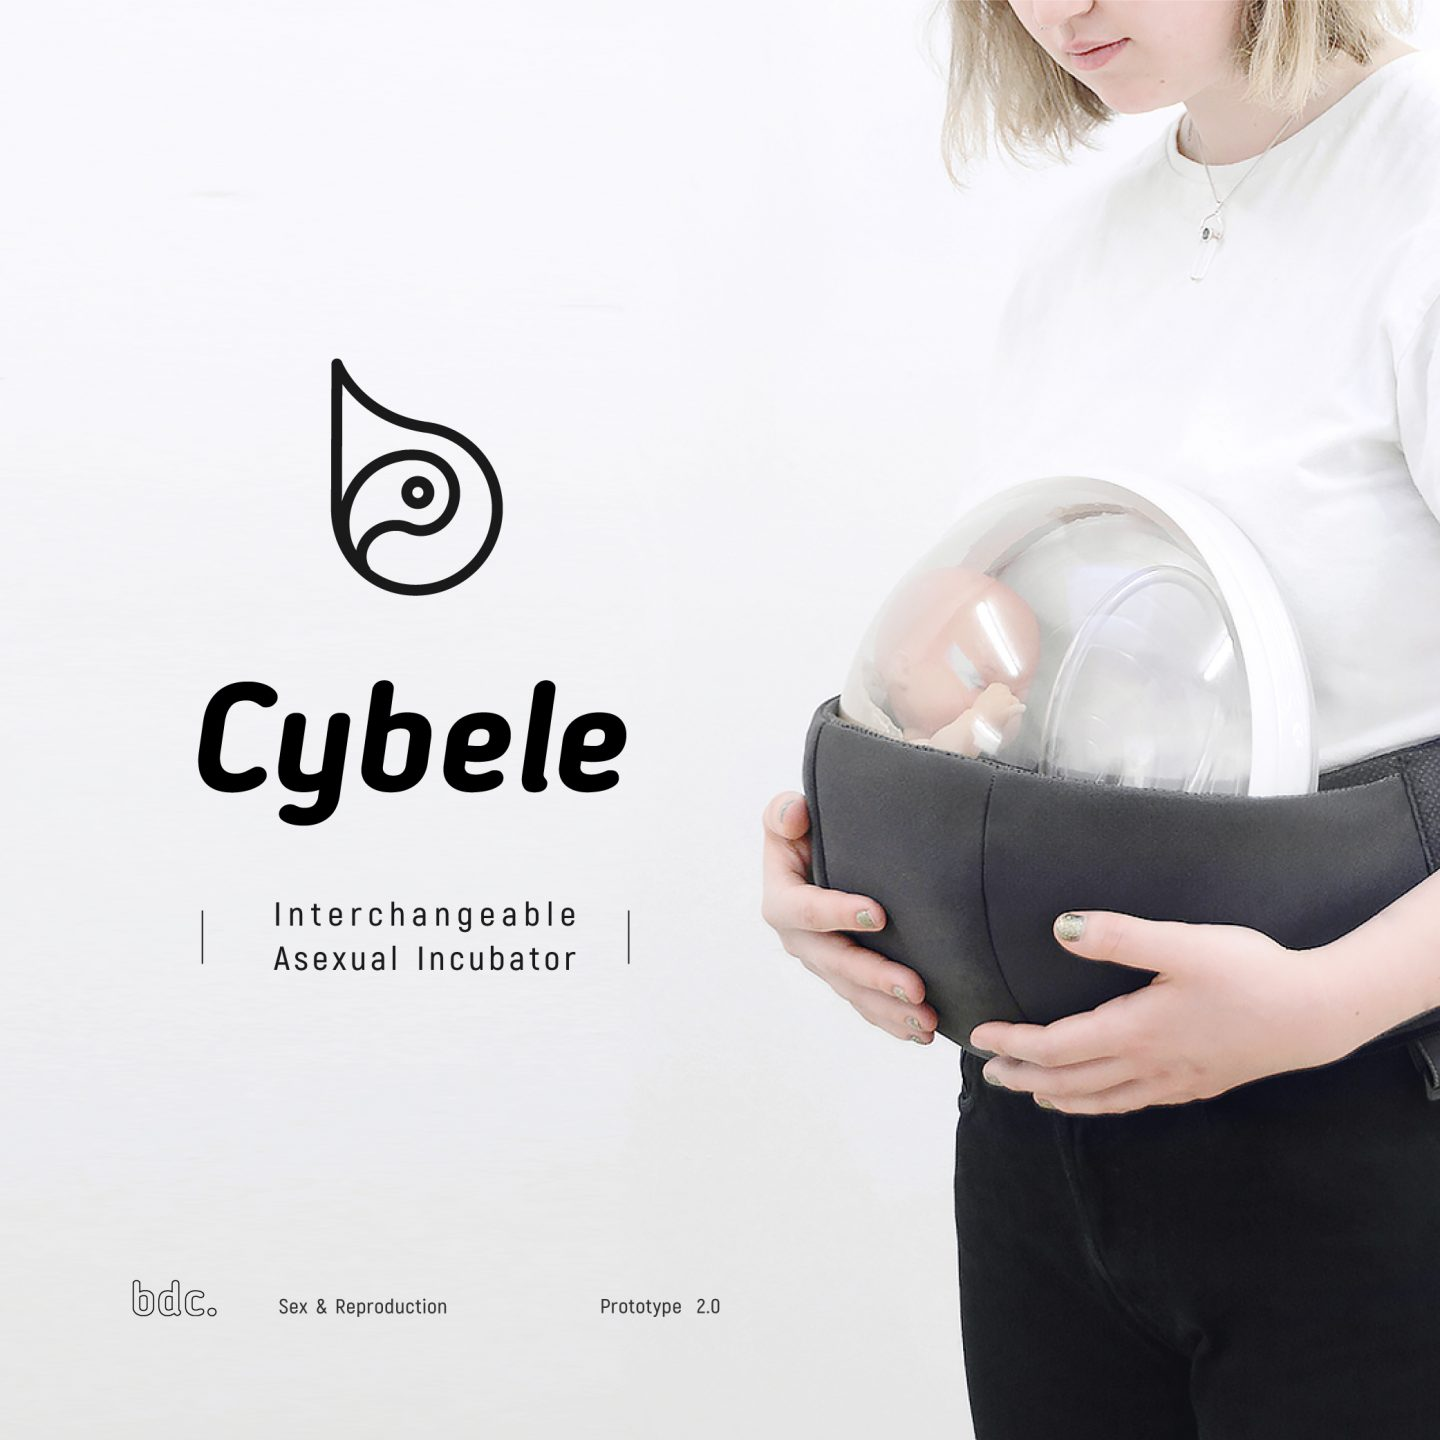 Cybele: An Artificial Asexual Womb